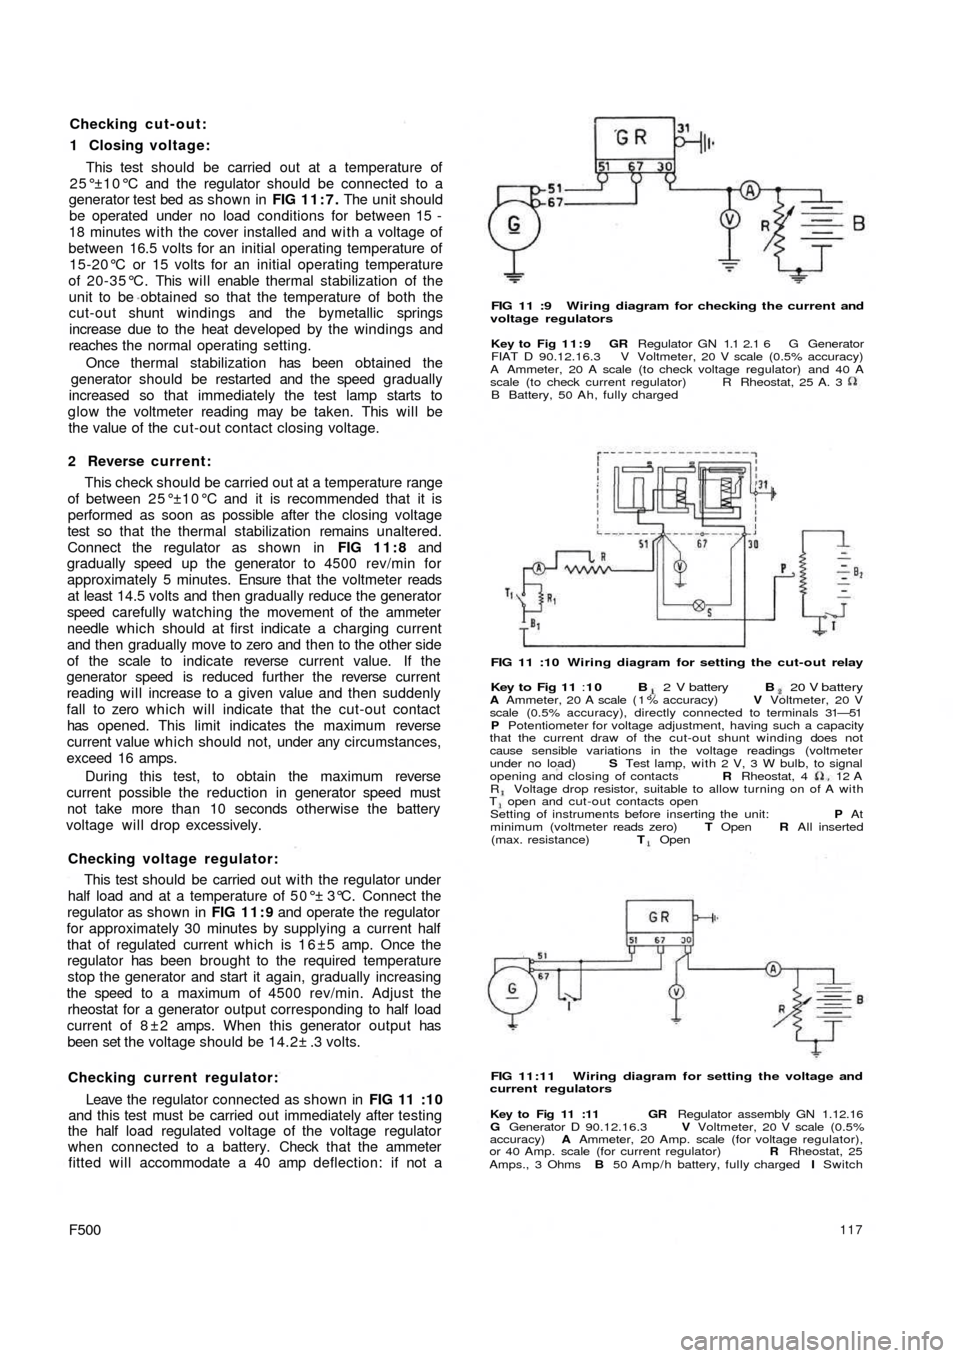 hight resolution of fiat 500 1960 1 g workshop manual